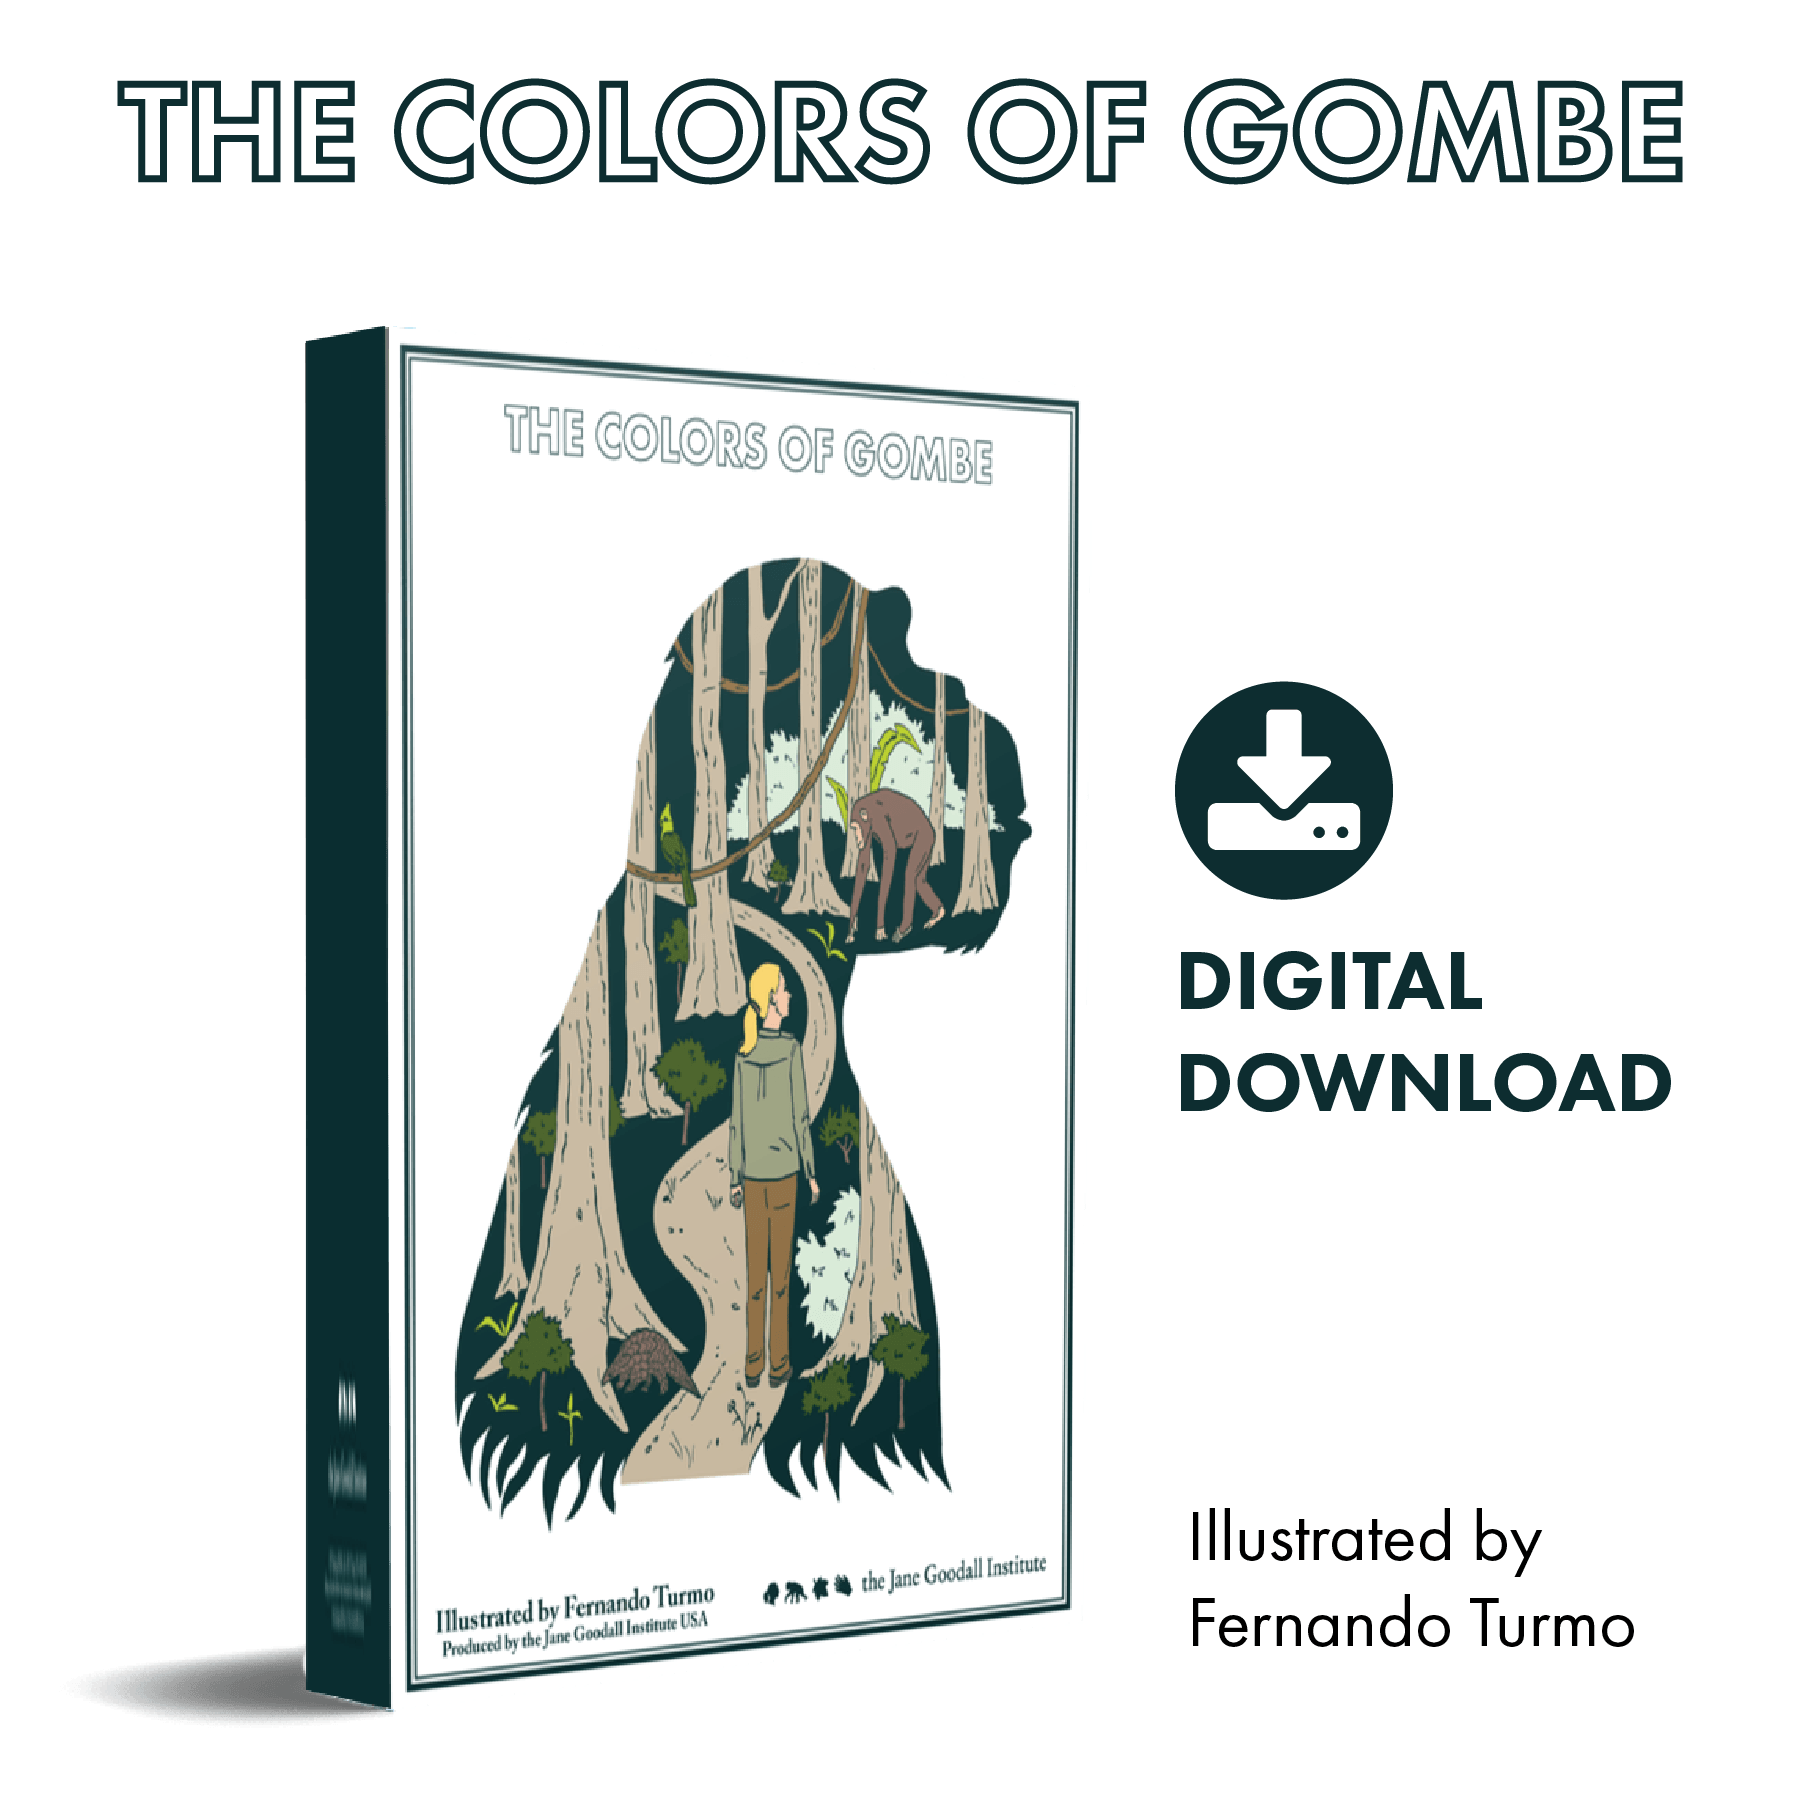 The Colors of Gombe Coloring Book - Digital Download